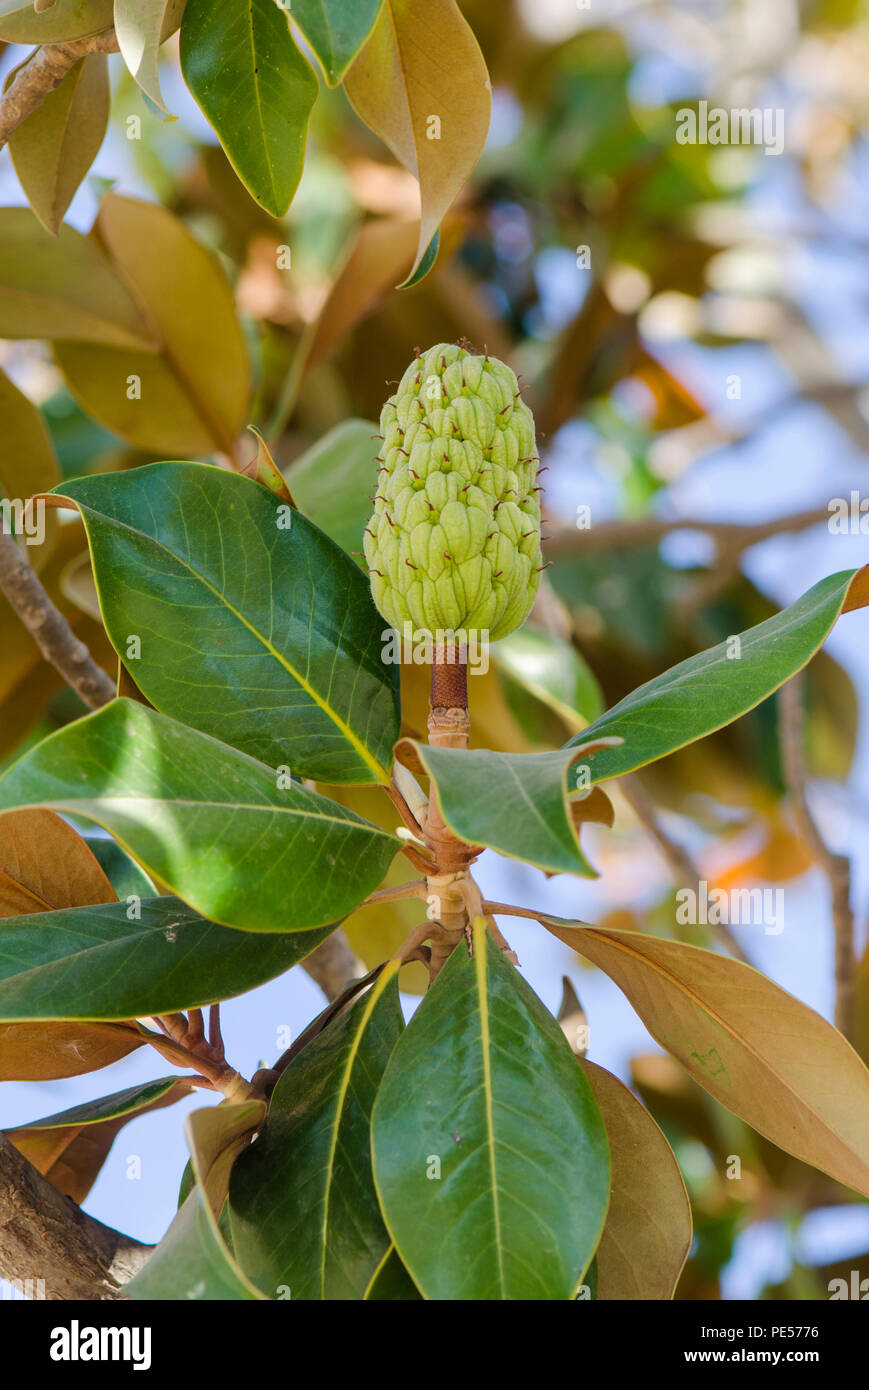 Fruit Seed Pods Of A Magnolia Grandiflora Tree Southern Magnolia